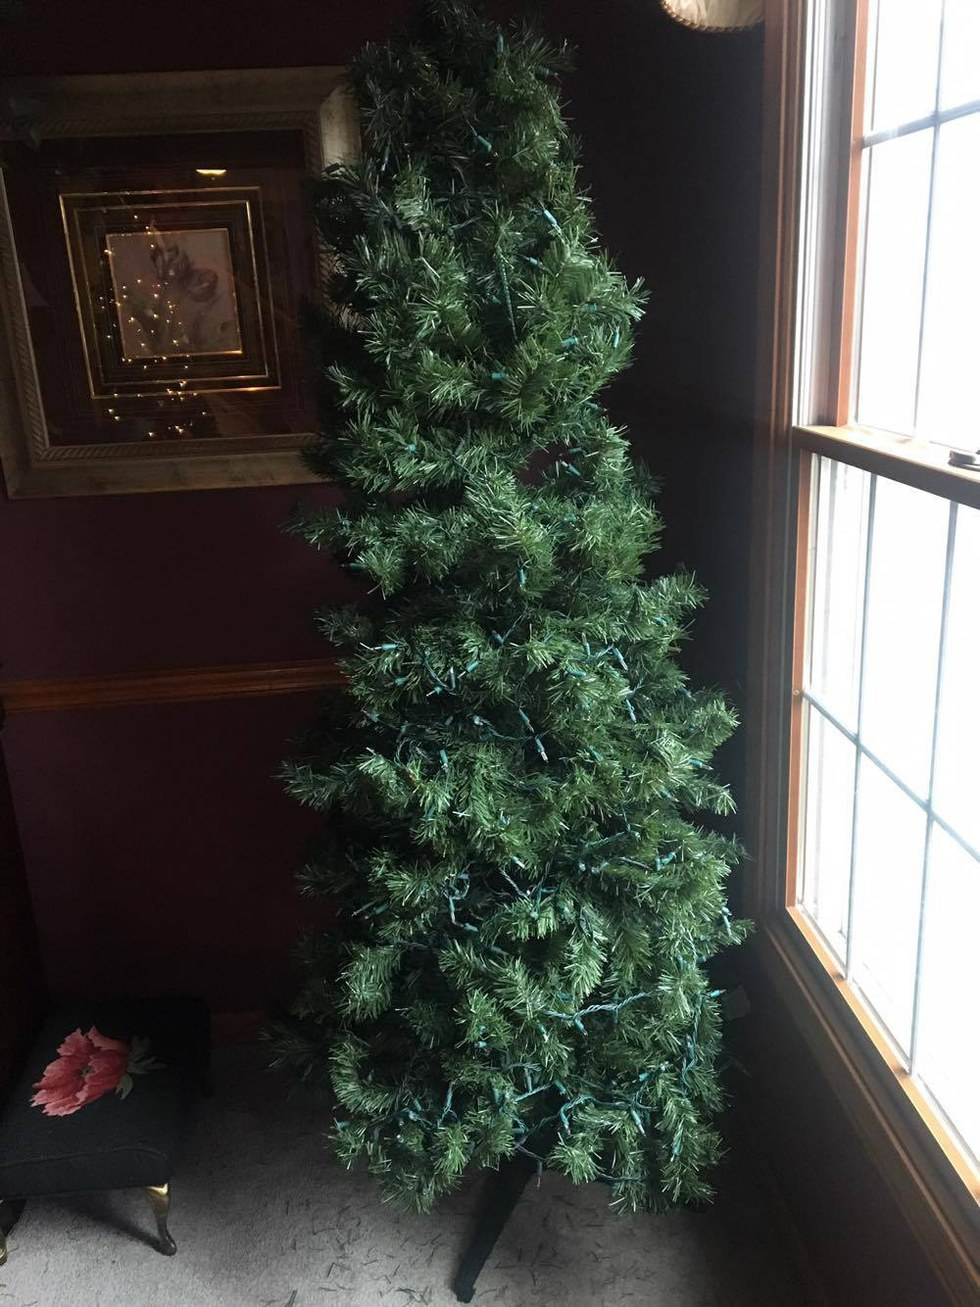 The Best Way To Decorate Your Christmas Tree This Year